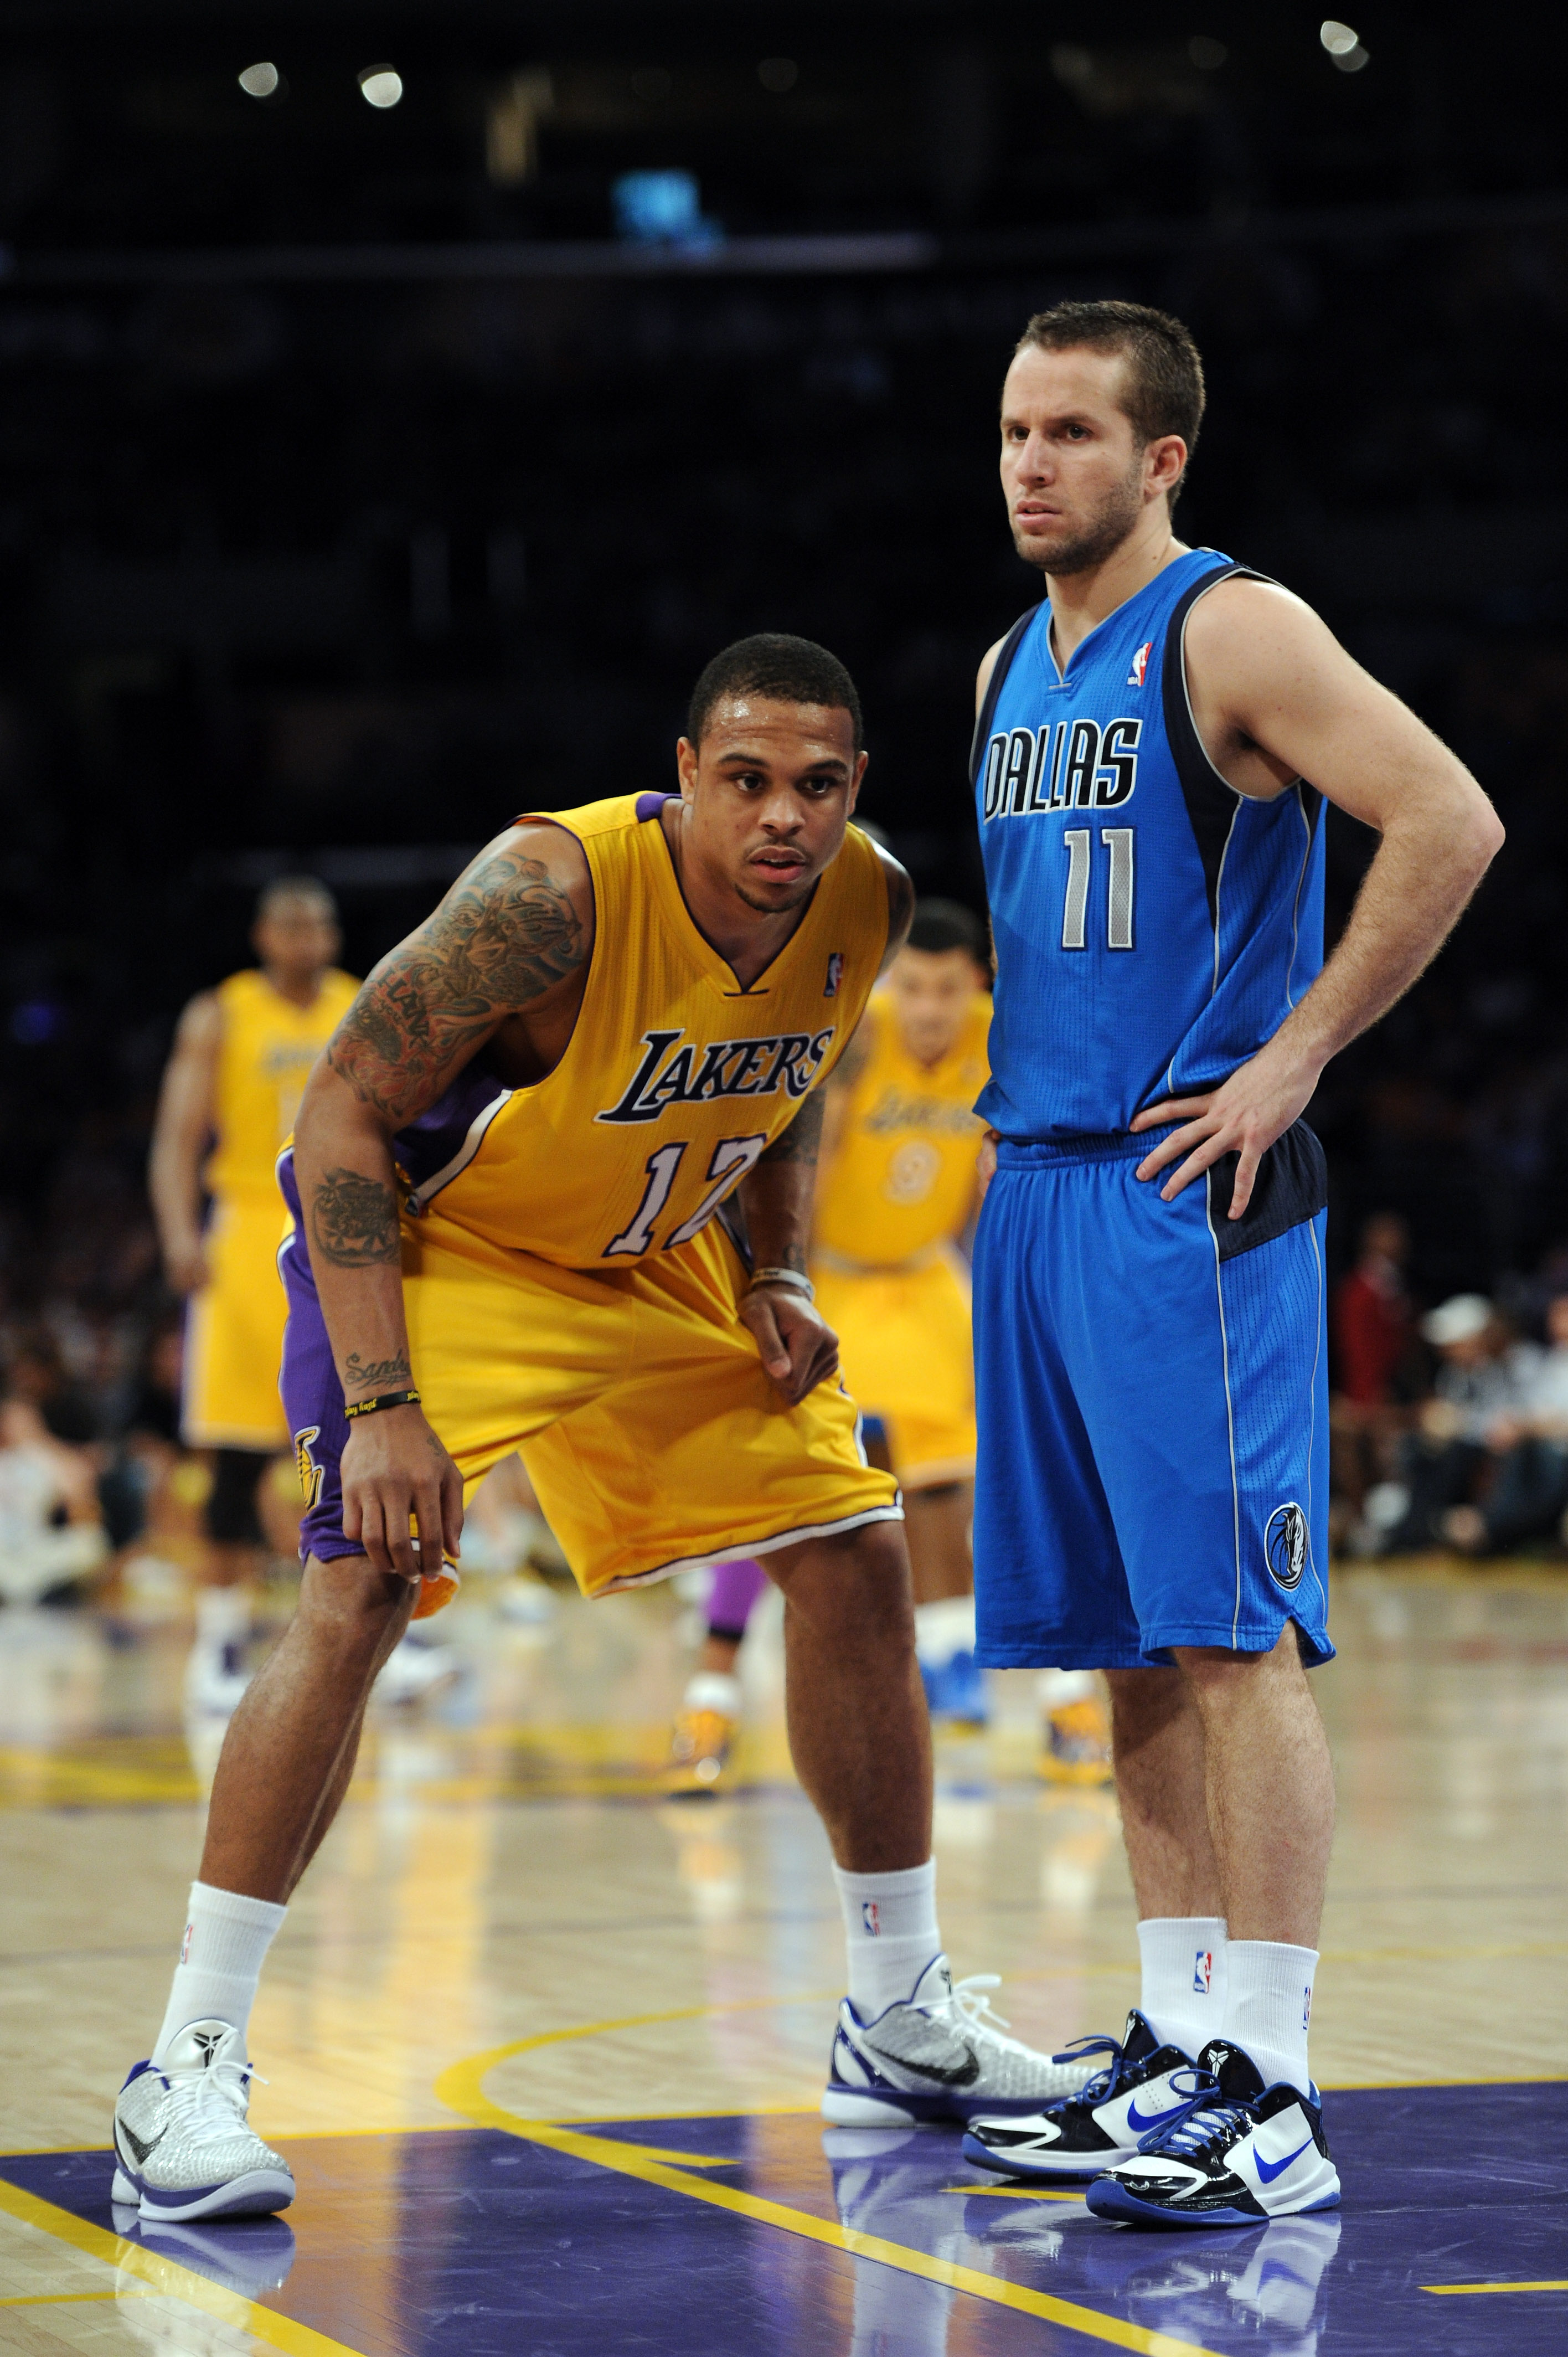 LOS ANGELES, CA - MARCH 31:  Shannon Brown #12 of the Los Angeles Lakers guards Jose Barea #11 of the Dallas Mavericks at Staples Center on March 31, 2011 in Los Angeles, California.  NOTE TO USER: User expressly acknowledges and agrees that, by downloadi